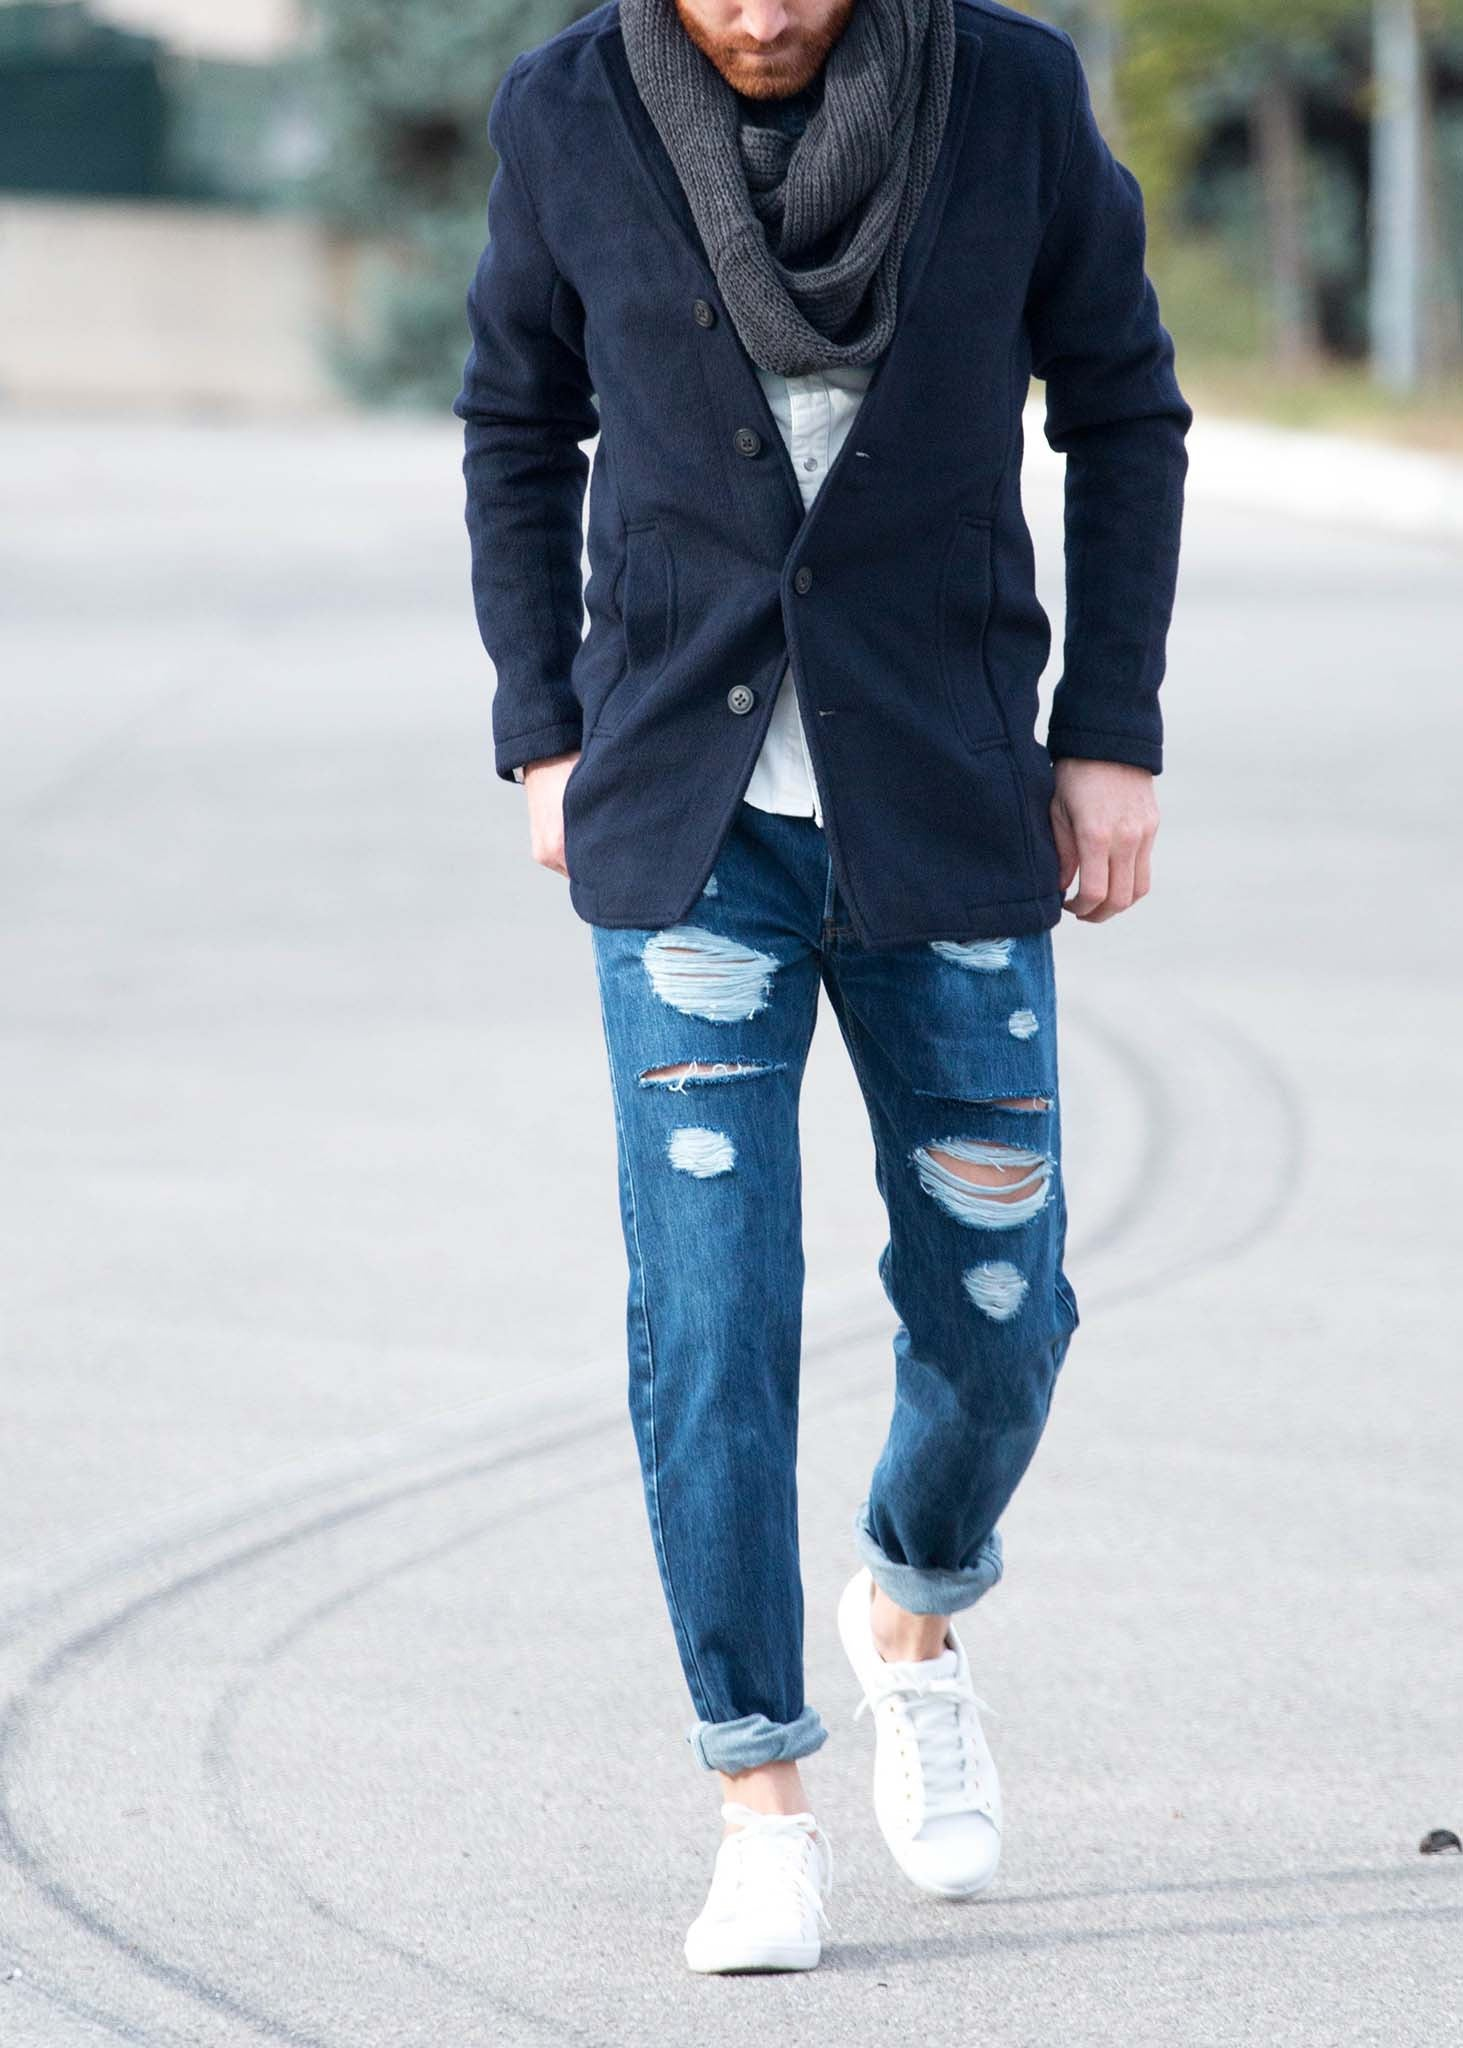 levis - Men Clothing - Fashion Man Clothing - Street Style Man